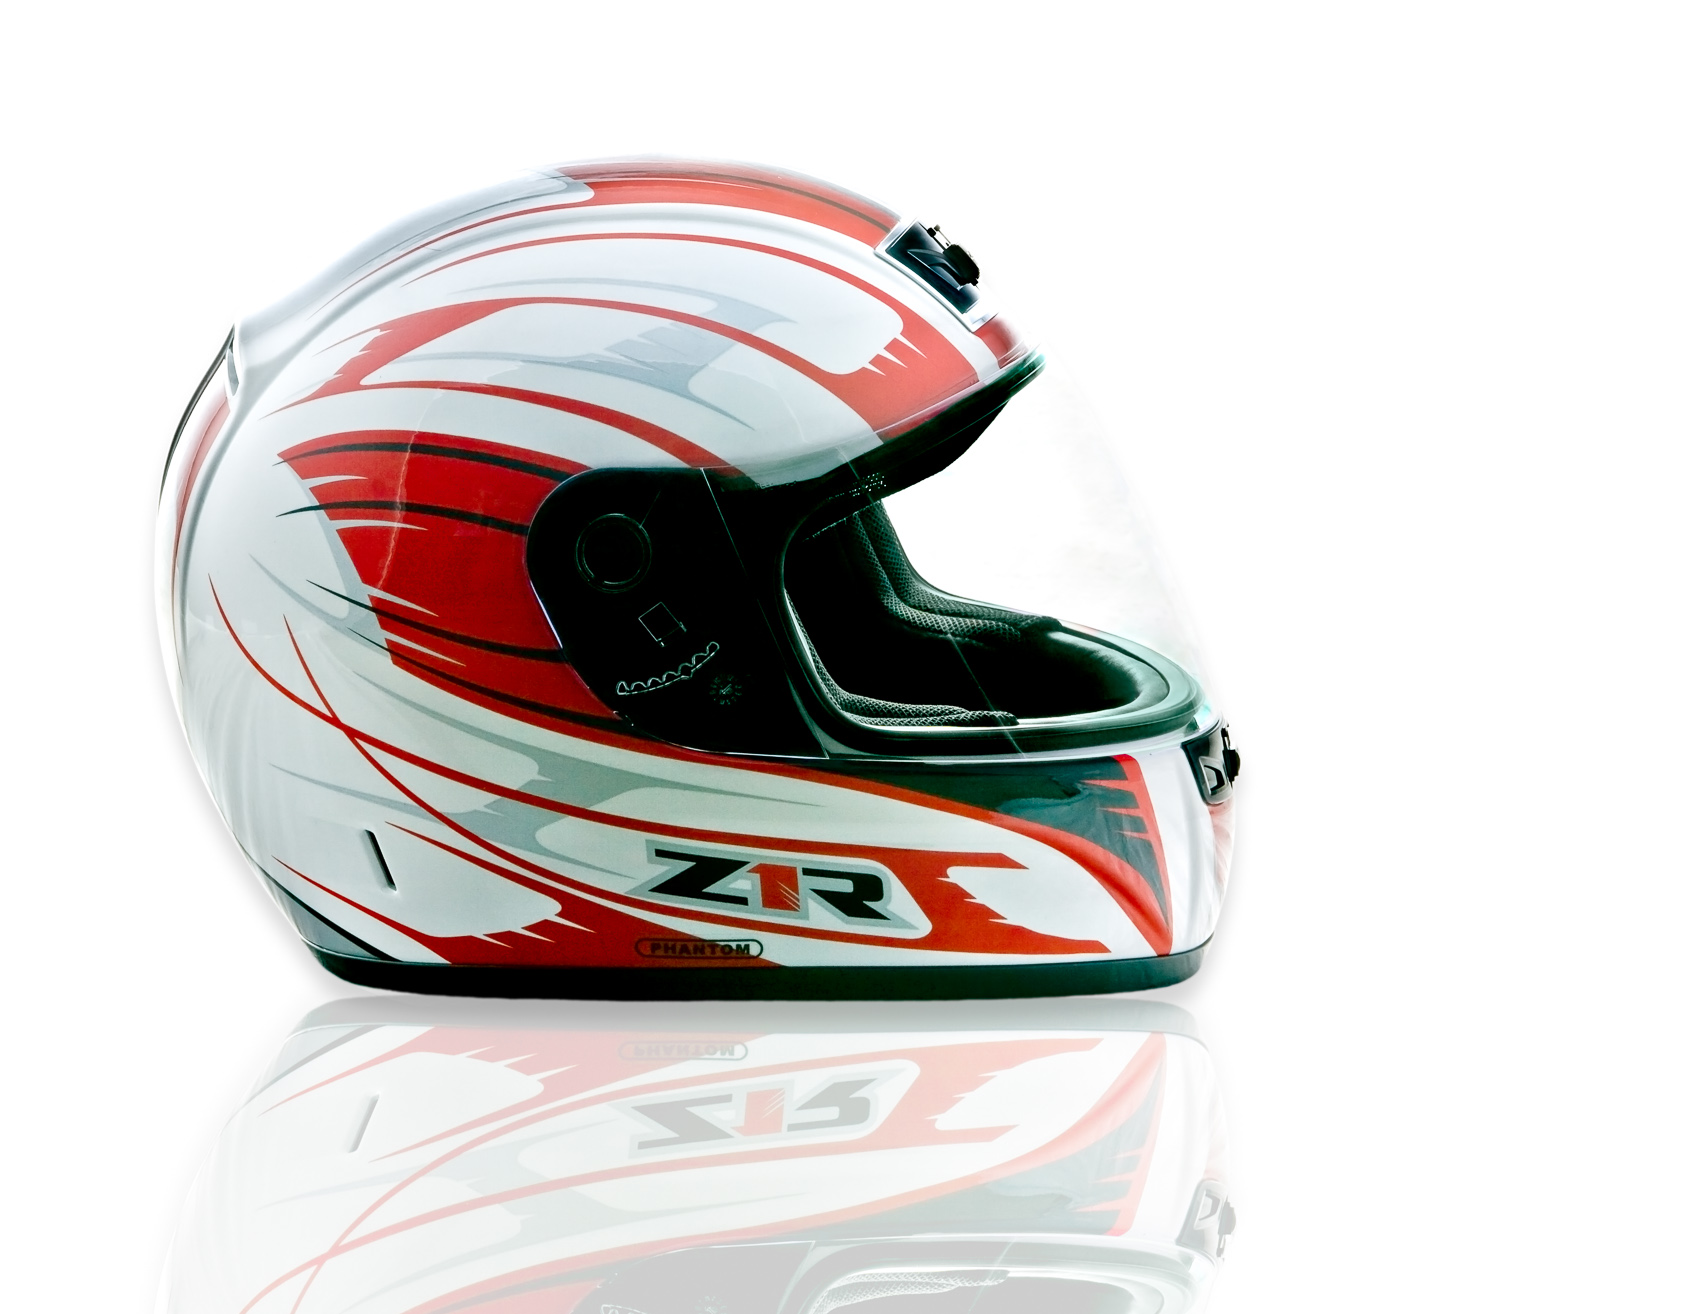 Studio Photograph of Z1R Helmet | J. Eldon Zimmerman Photography | Lancaster, PA Commercial Photographer